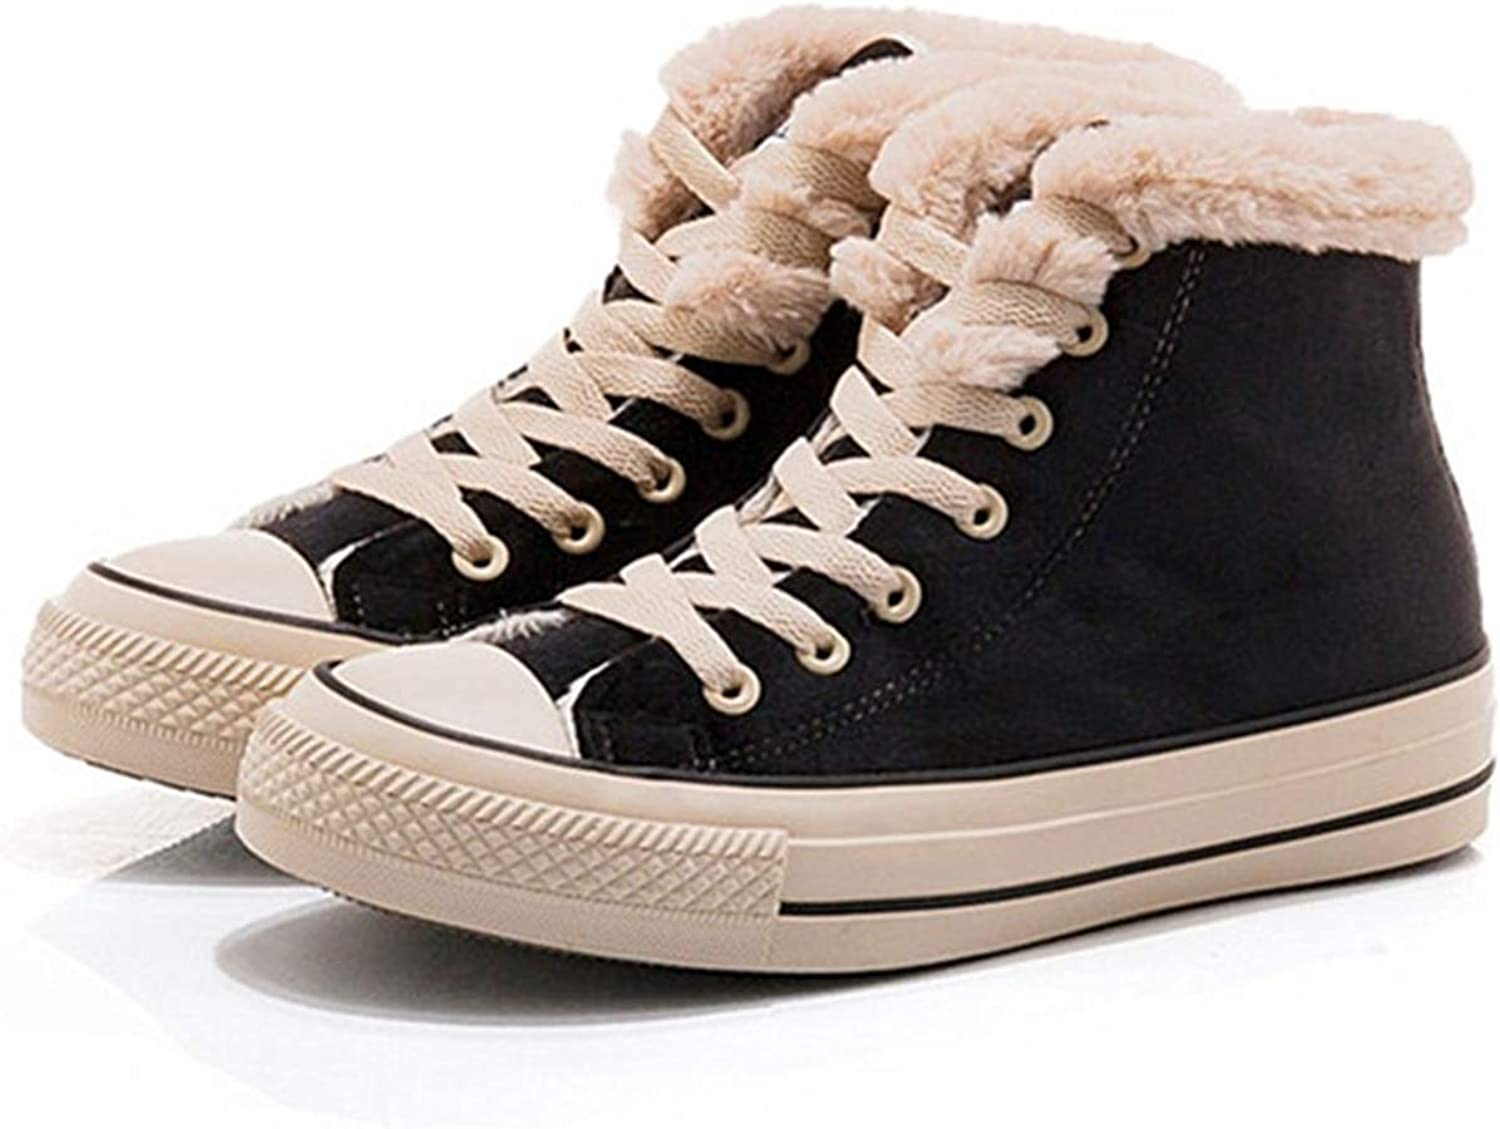 JUSTFASHIONNOW Womens Girl Canvas shoes Lace-Up Suede Sneaker Hight Top Fashion Walking shoes Platform Warm Round Toe Comfy Ankle Snow Boots